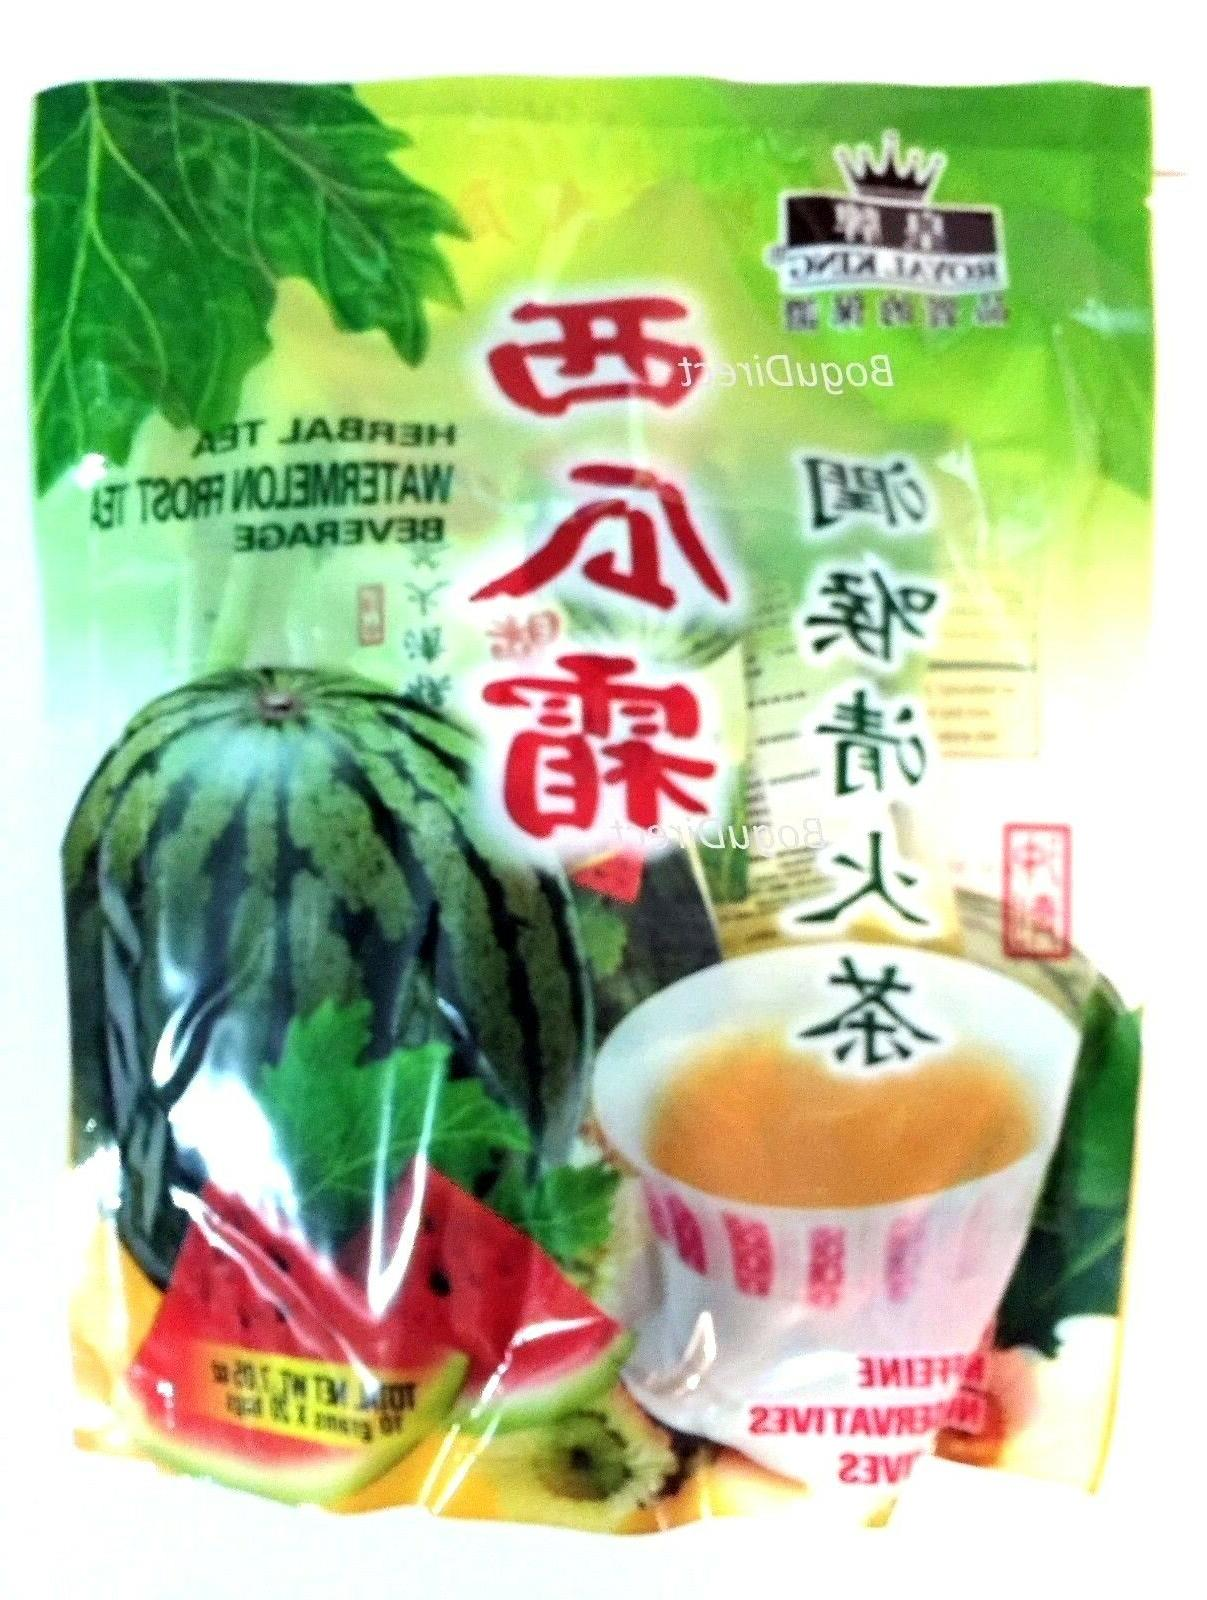 Royal King Herbal Watermelon Frost Tea - Bag of 20 pack @ 7.